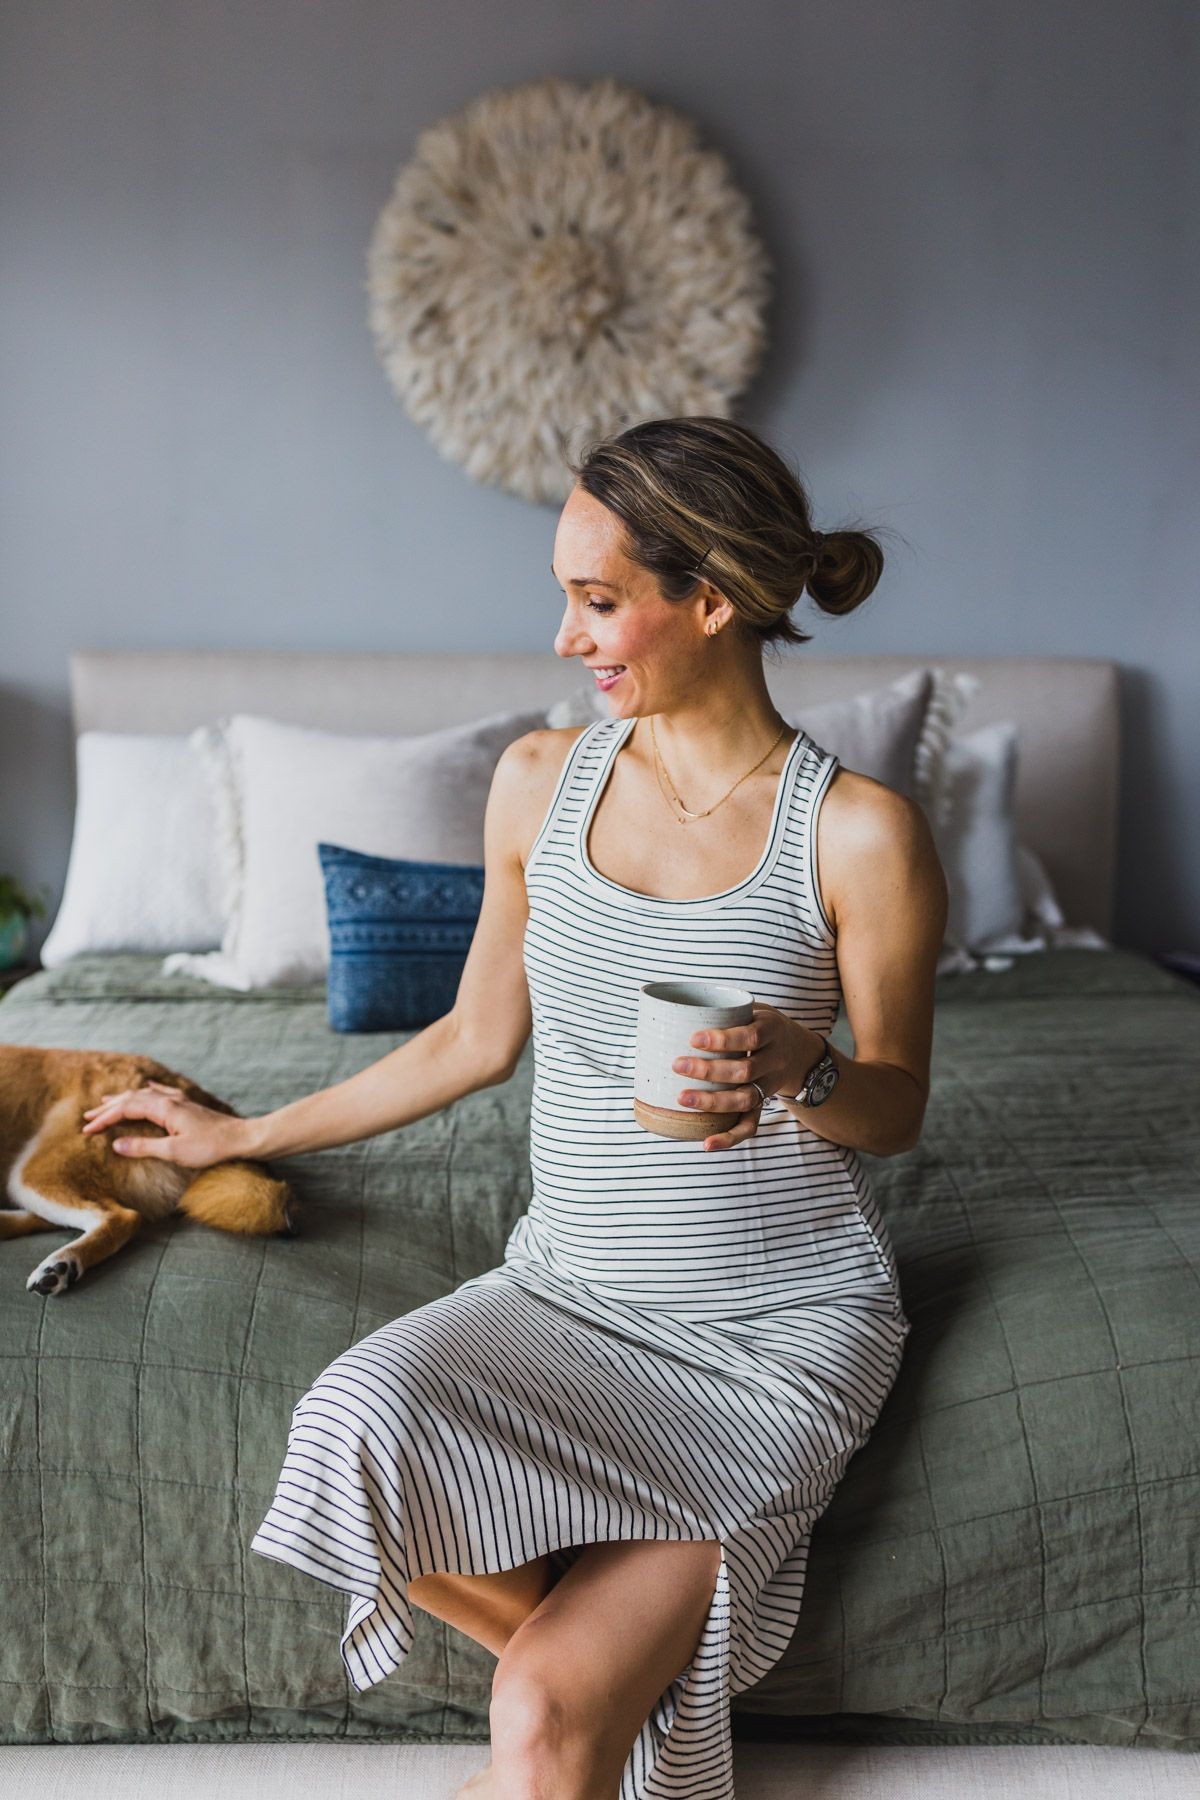 How to Heal the Gut - The Fox & She #guthealth #healthyliving #wellness